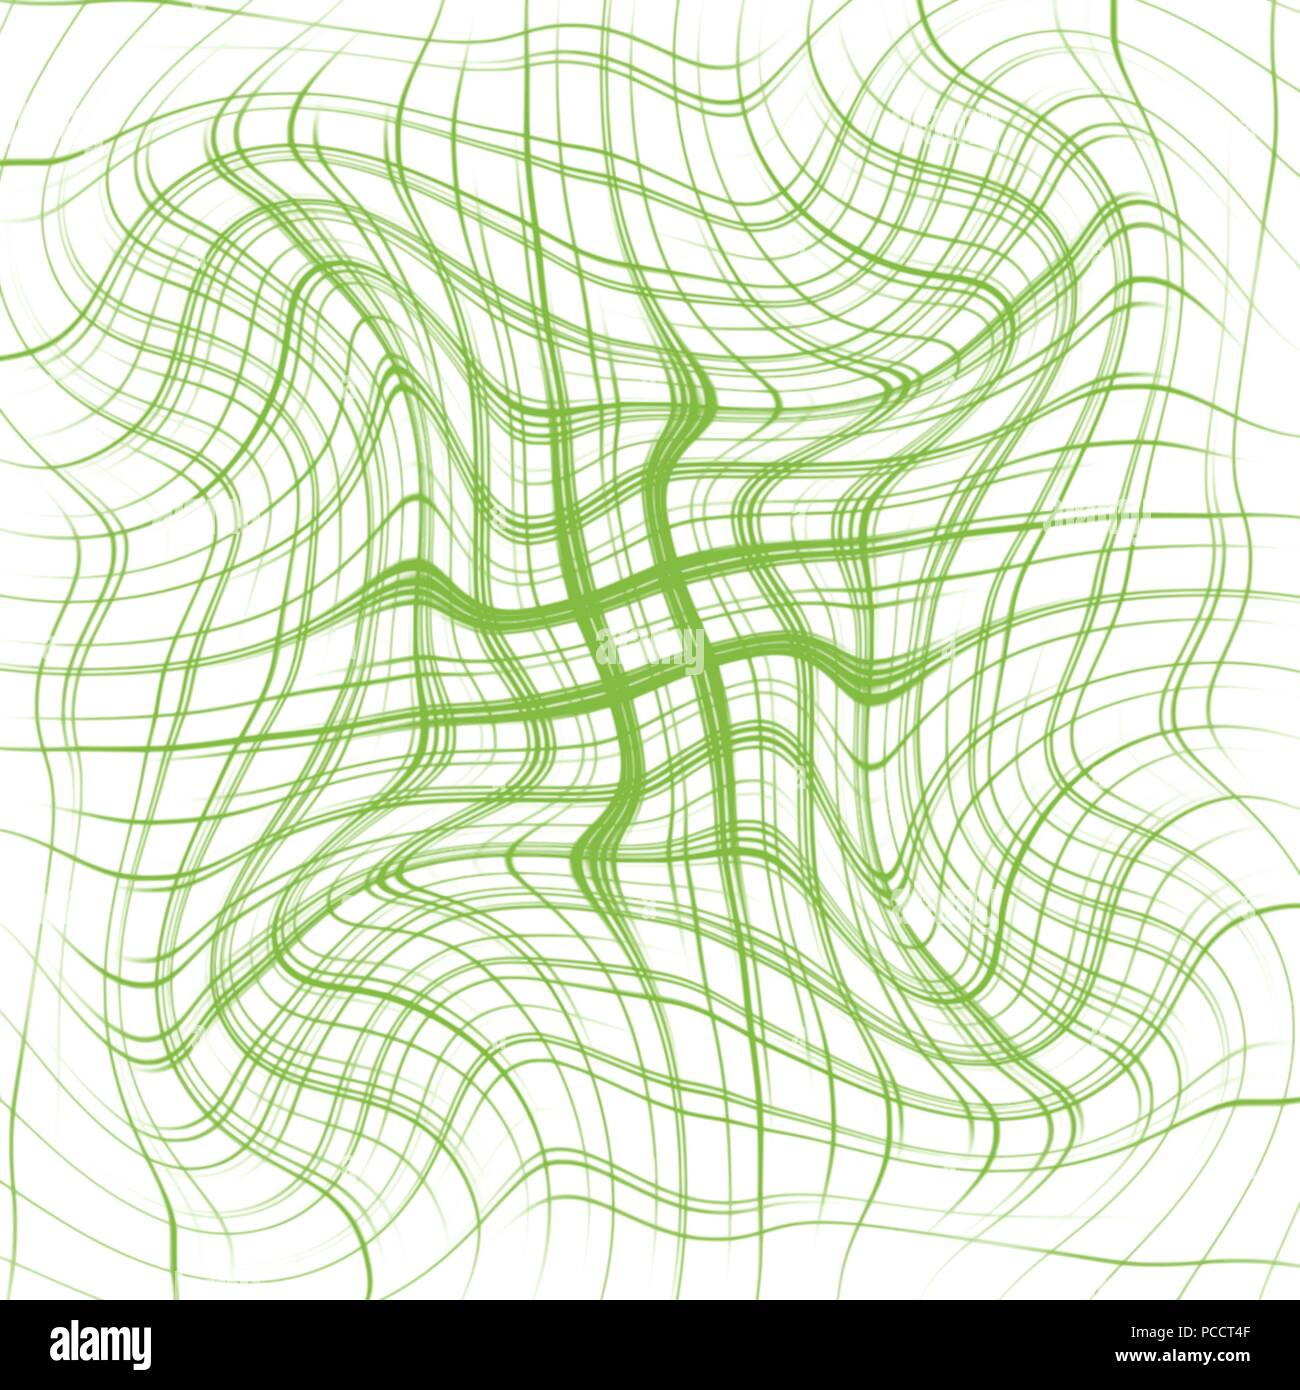 green abstract warped grid background pattern, vector illustration - Stock Image